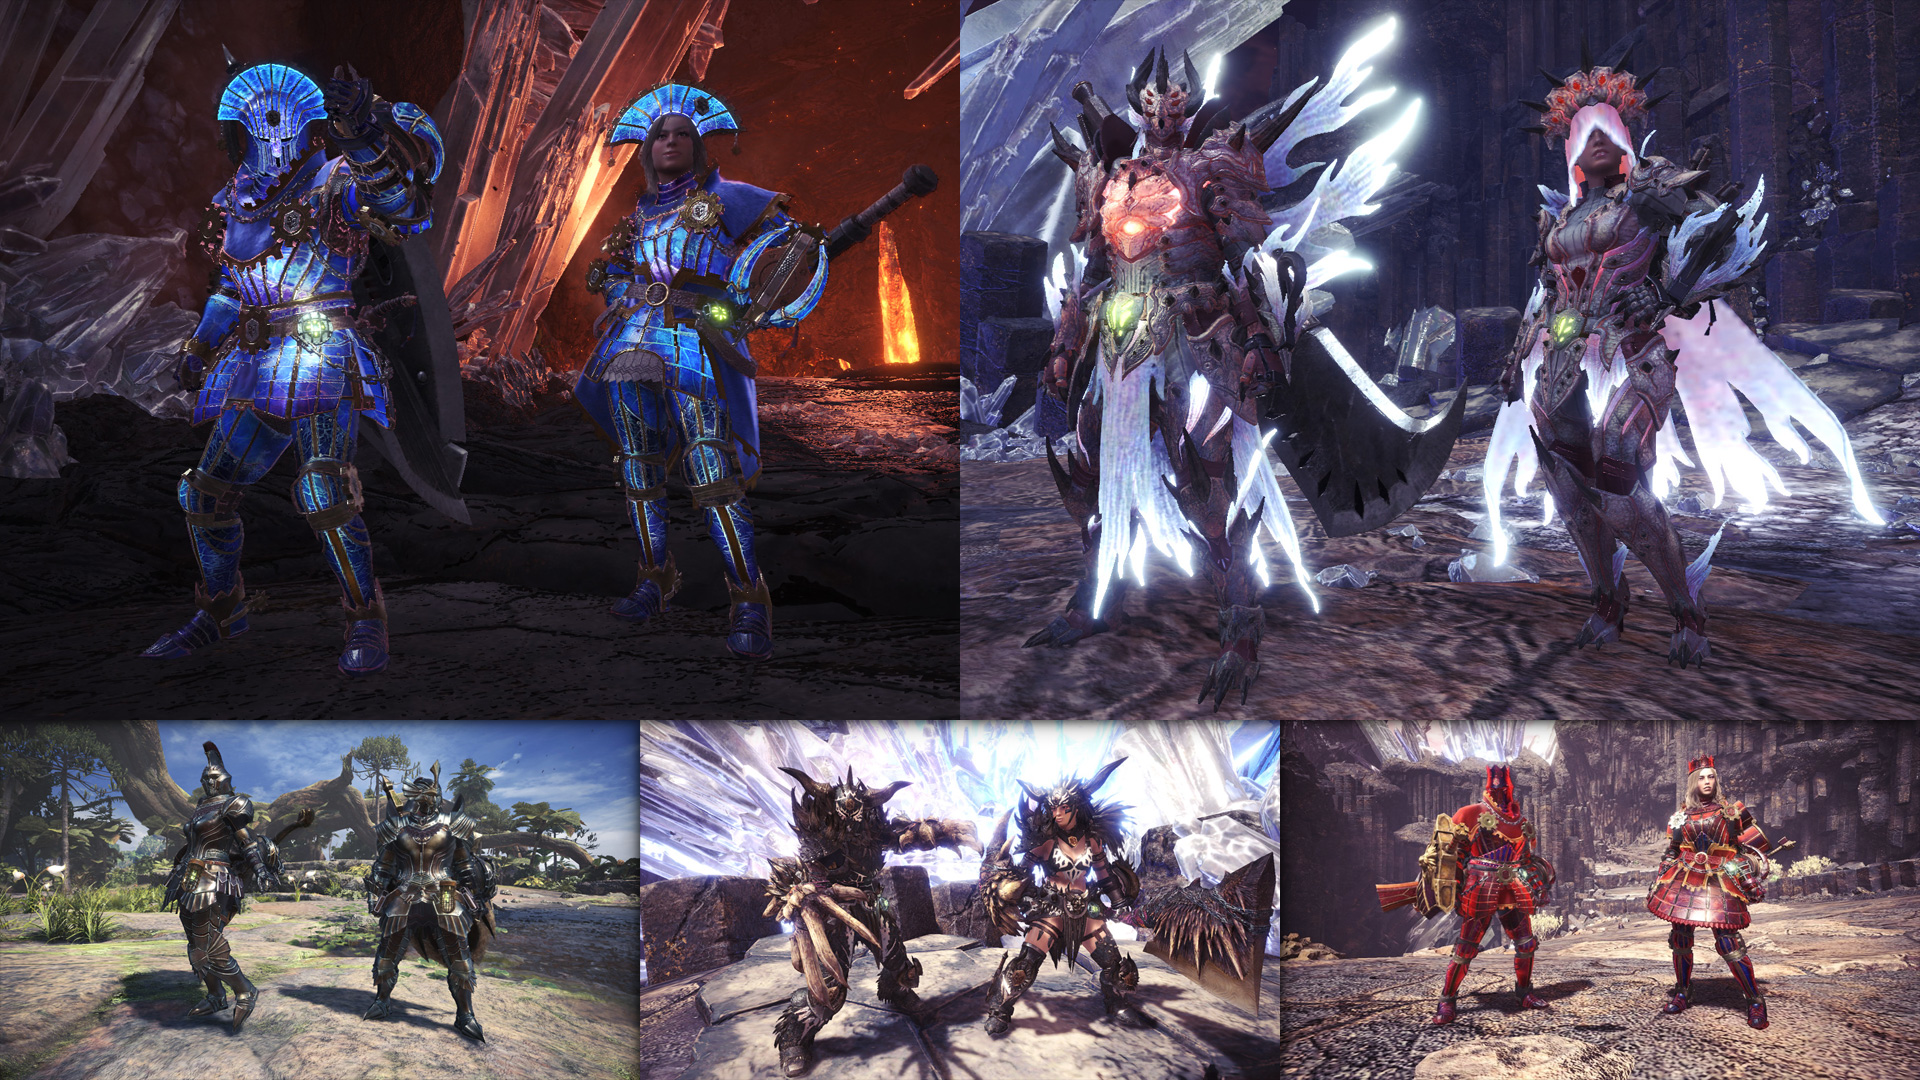 Monster Hunter On Twitter Lots More High Rank Armor Are Now Available As Layered Armor In Iceborne Including The Prestigious Elder Dragon G Armor Sets Hunt High Rank Arch Tempered Elder Dragons After defeating or capturing these monsters, players can carve parts off of these powerful beasts to make better weapons and armor. hunt high rank arch tempered elder dragons